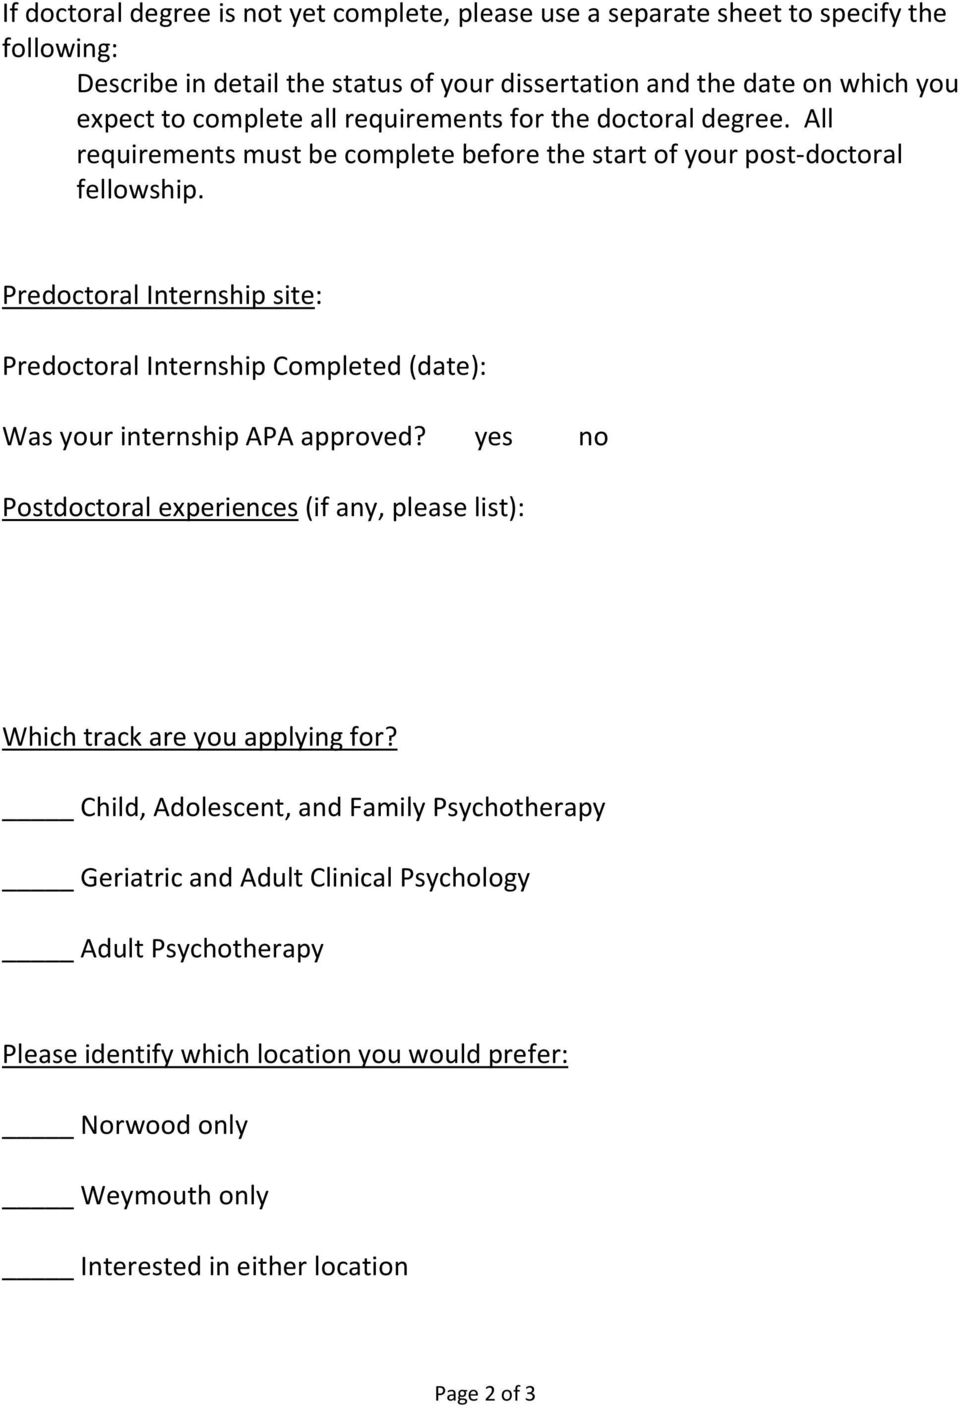 Predoctoral Internship site: Predoctoral Internship Completed (date): Was your internship APA approved?